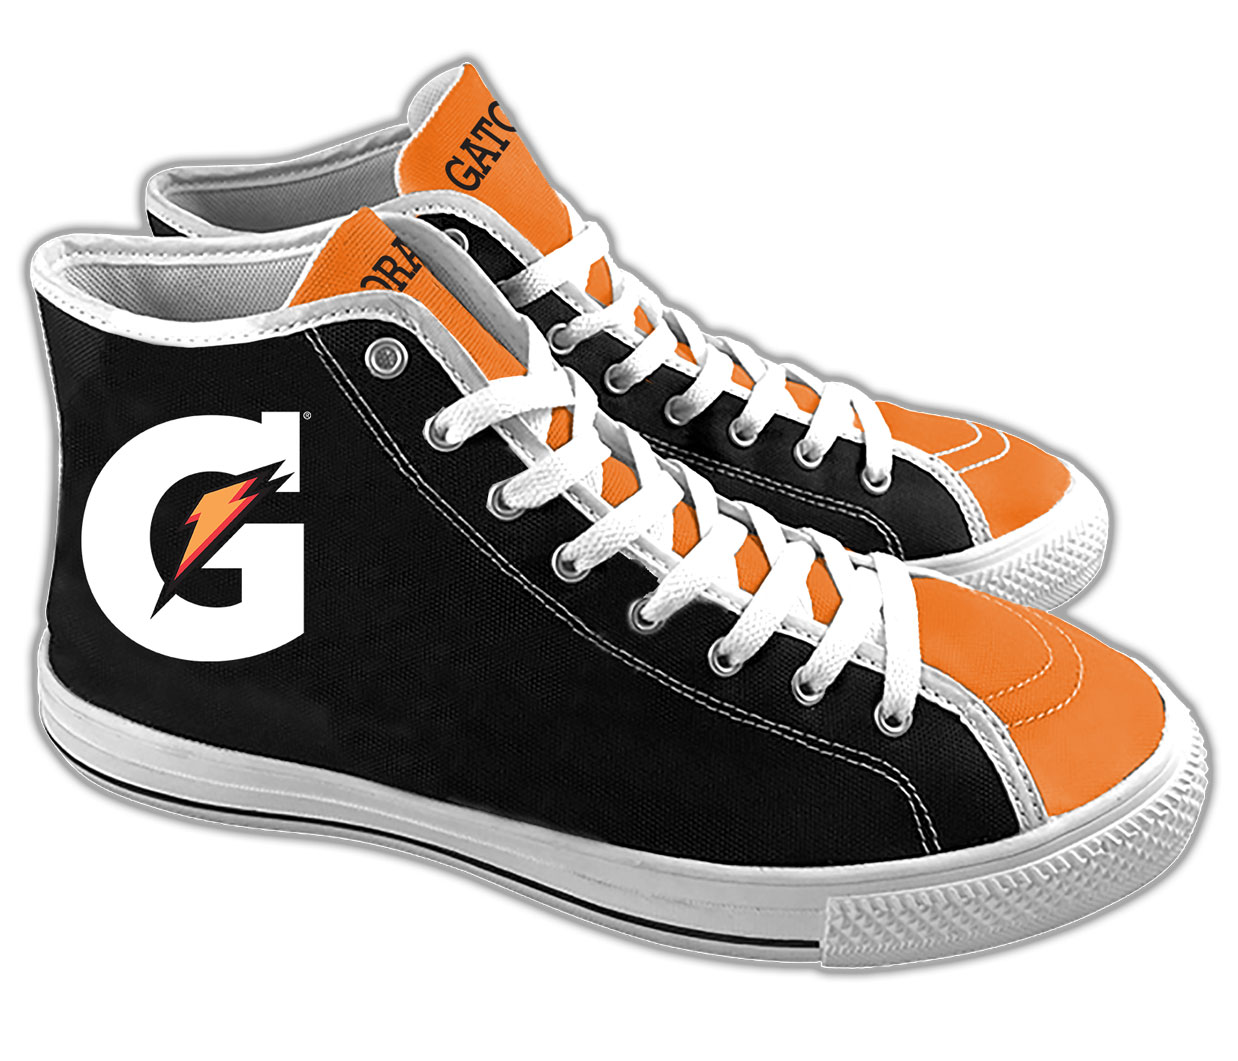 Ladies' Court Sneakers - Gatorade